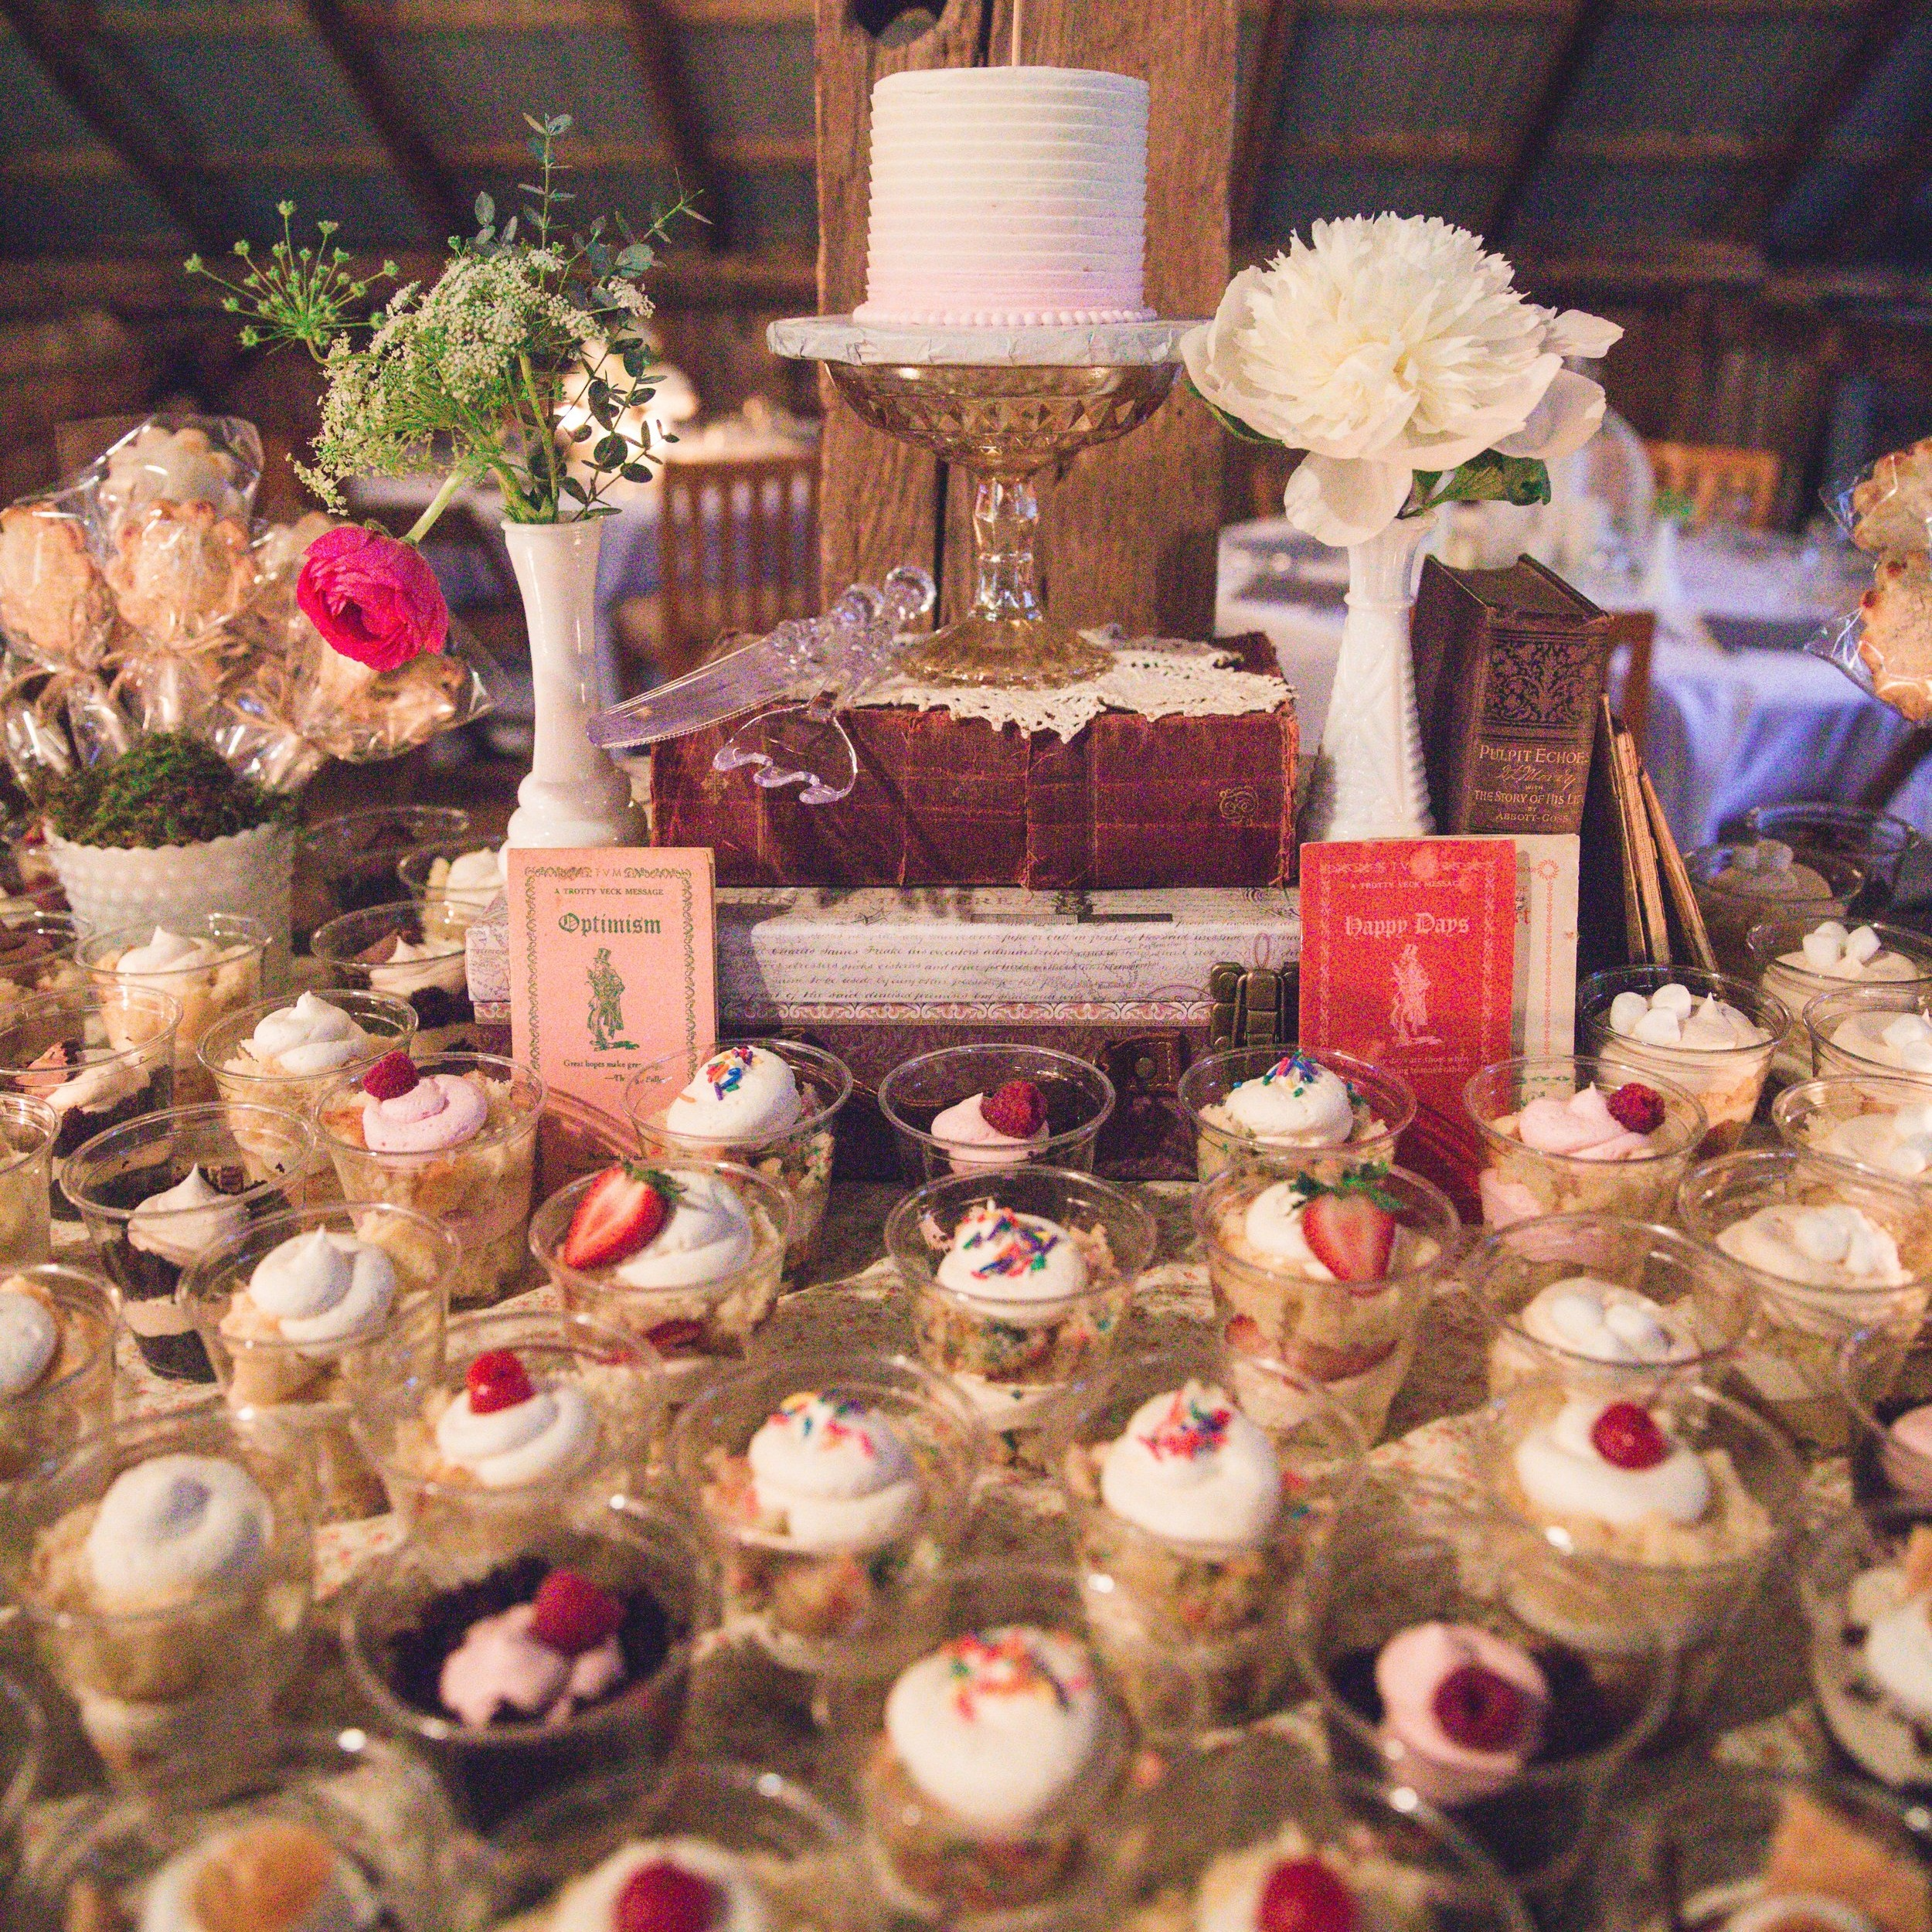 weddings - for a sweet ending to your new beginning